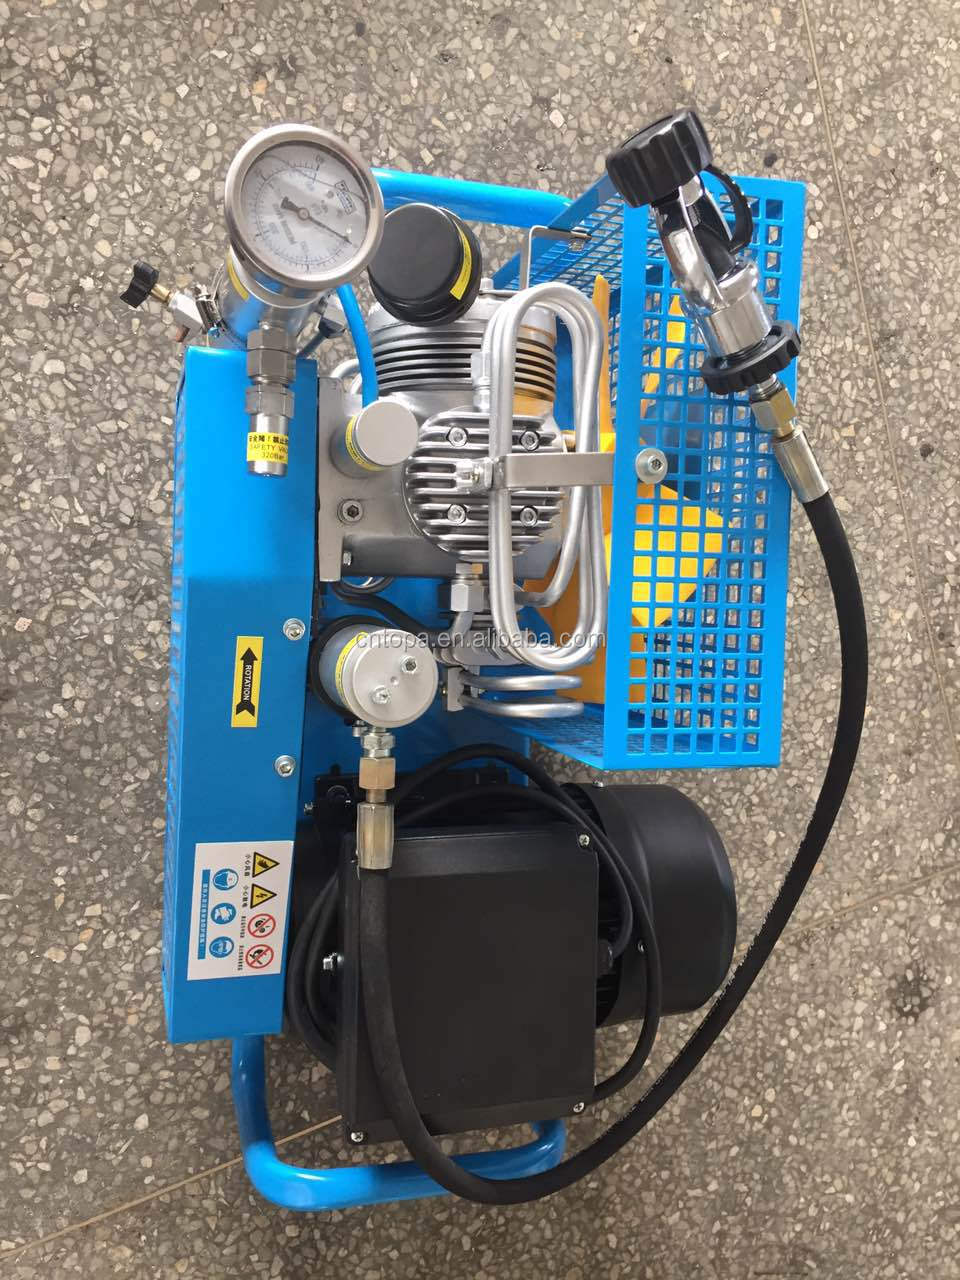 Portable Hookah Breathing Air Compressor System For Scuba